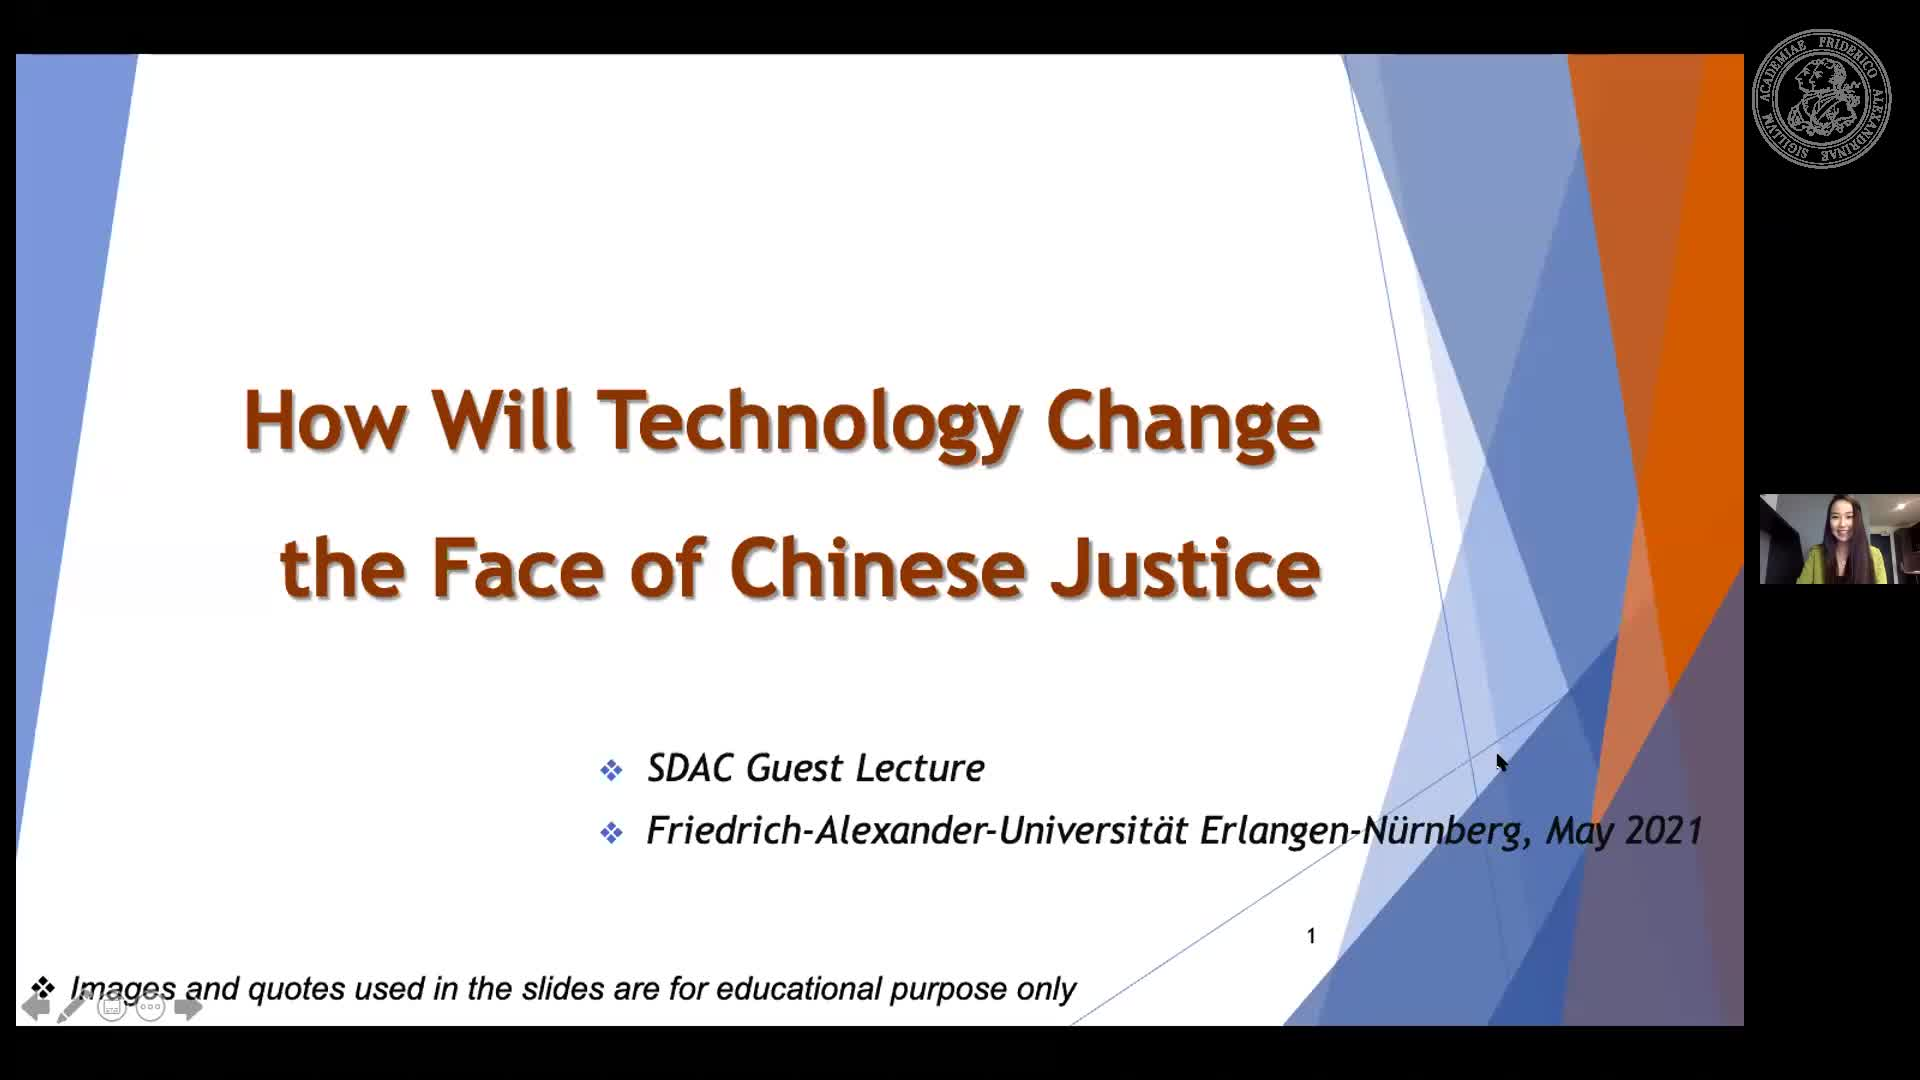 """Zhiyu Li (Durham University): """"How Will Technology Change the Face of Chinese Justice?"""" preview image"""